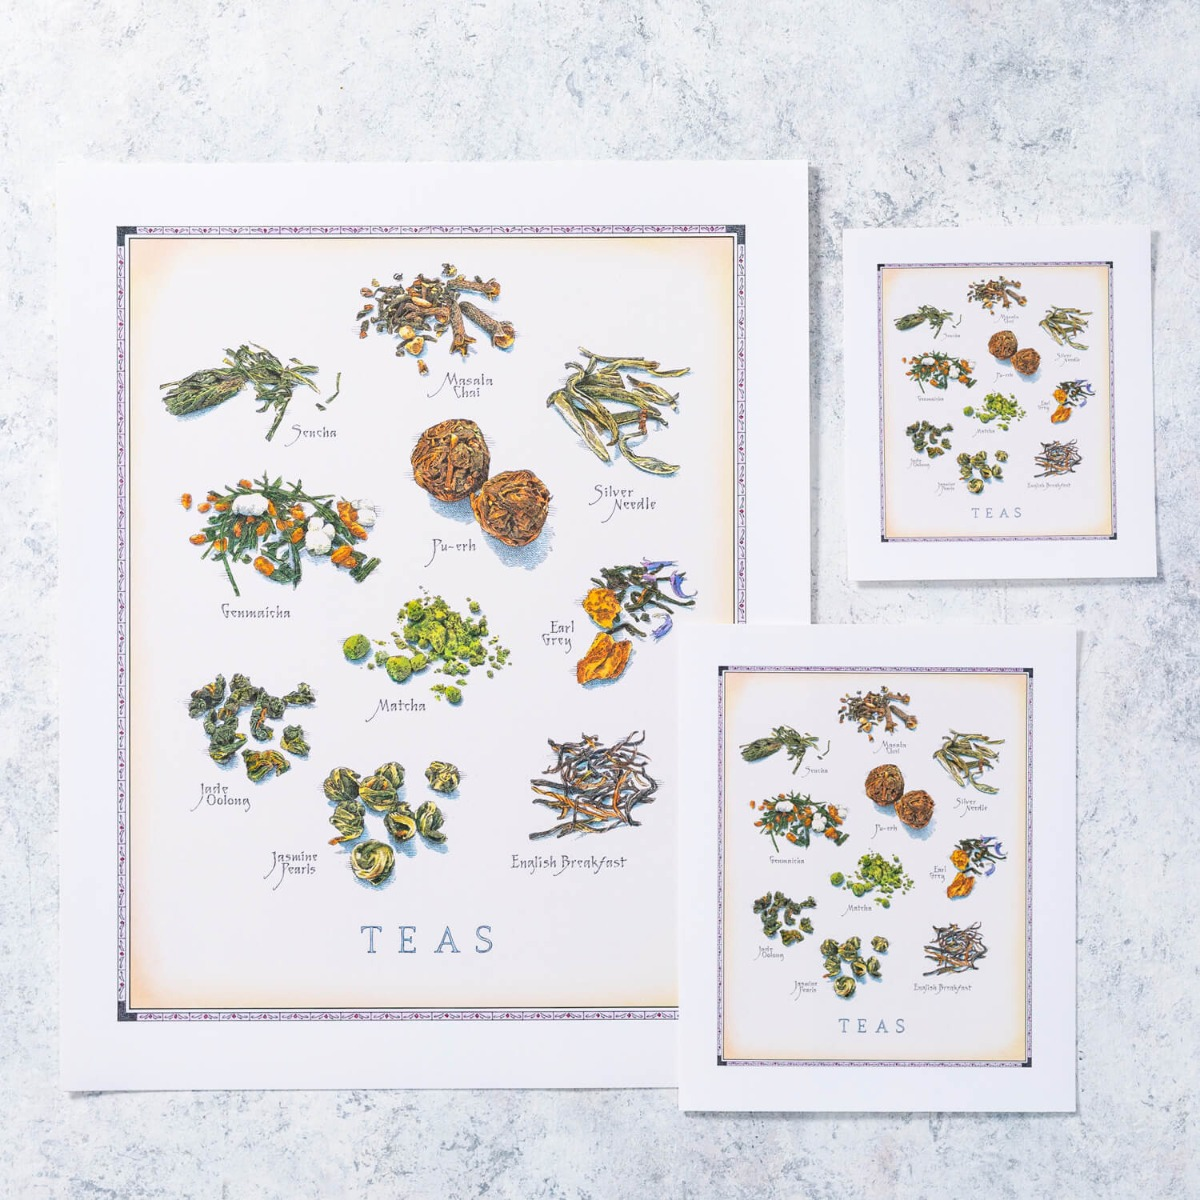 Cook's Illustrated Unframed Print: Teas